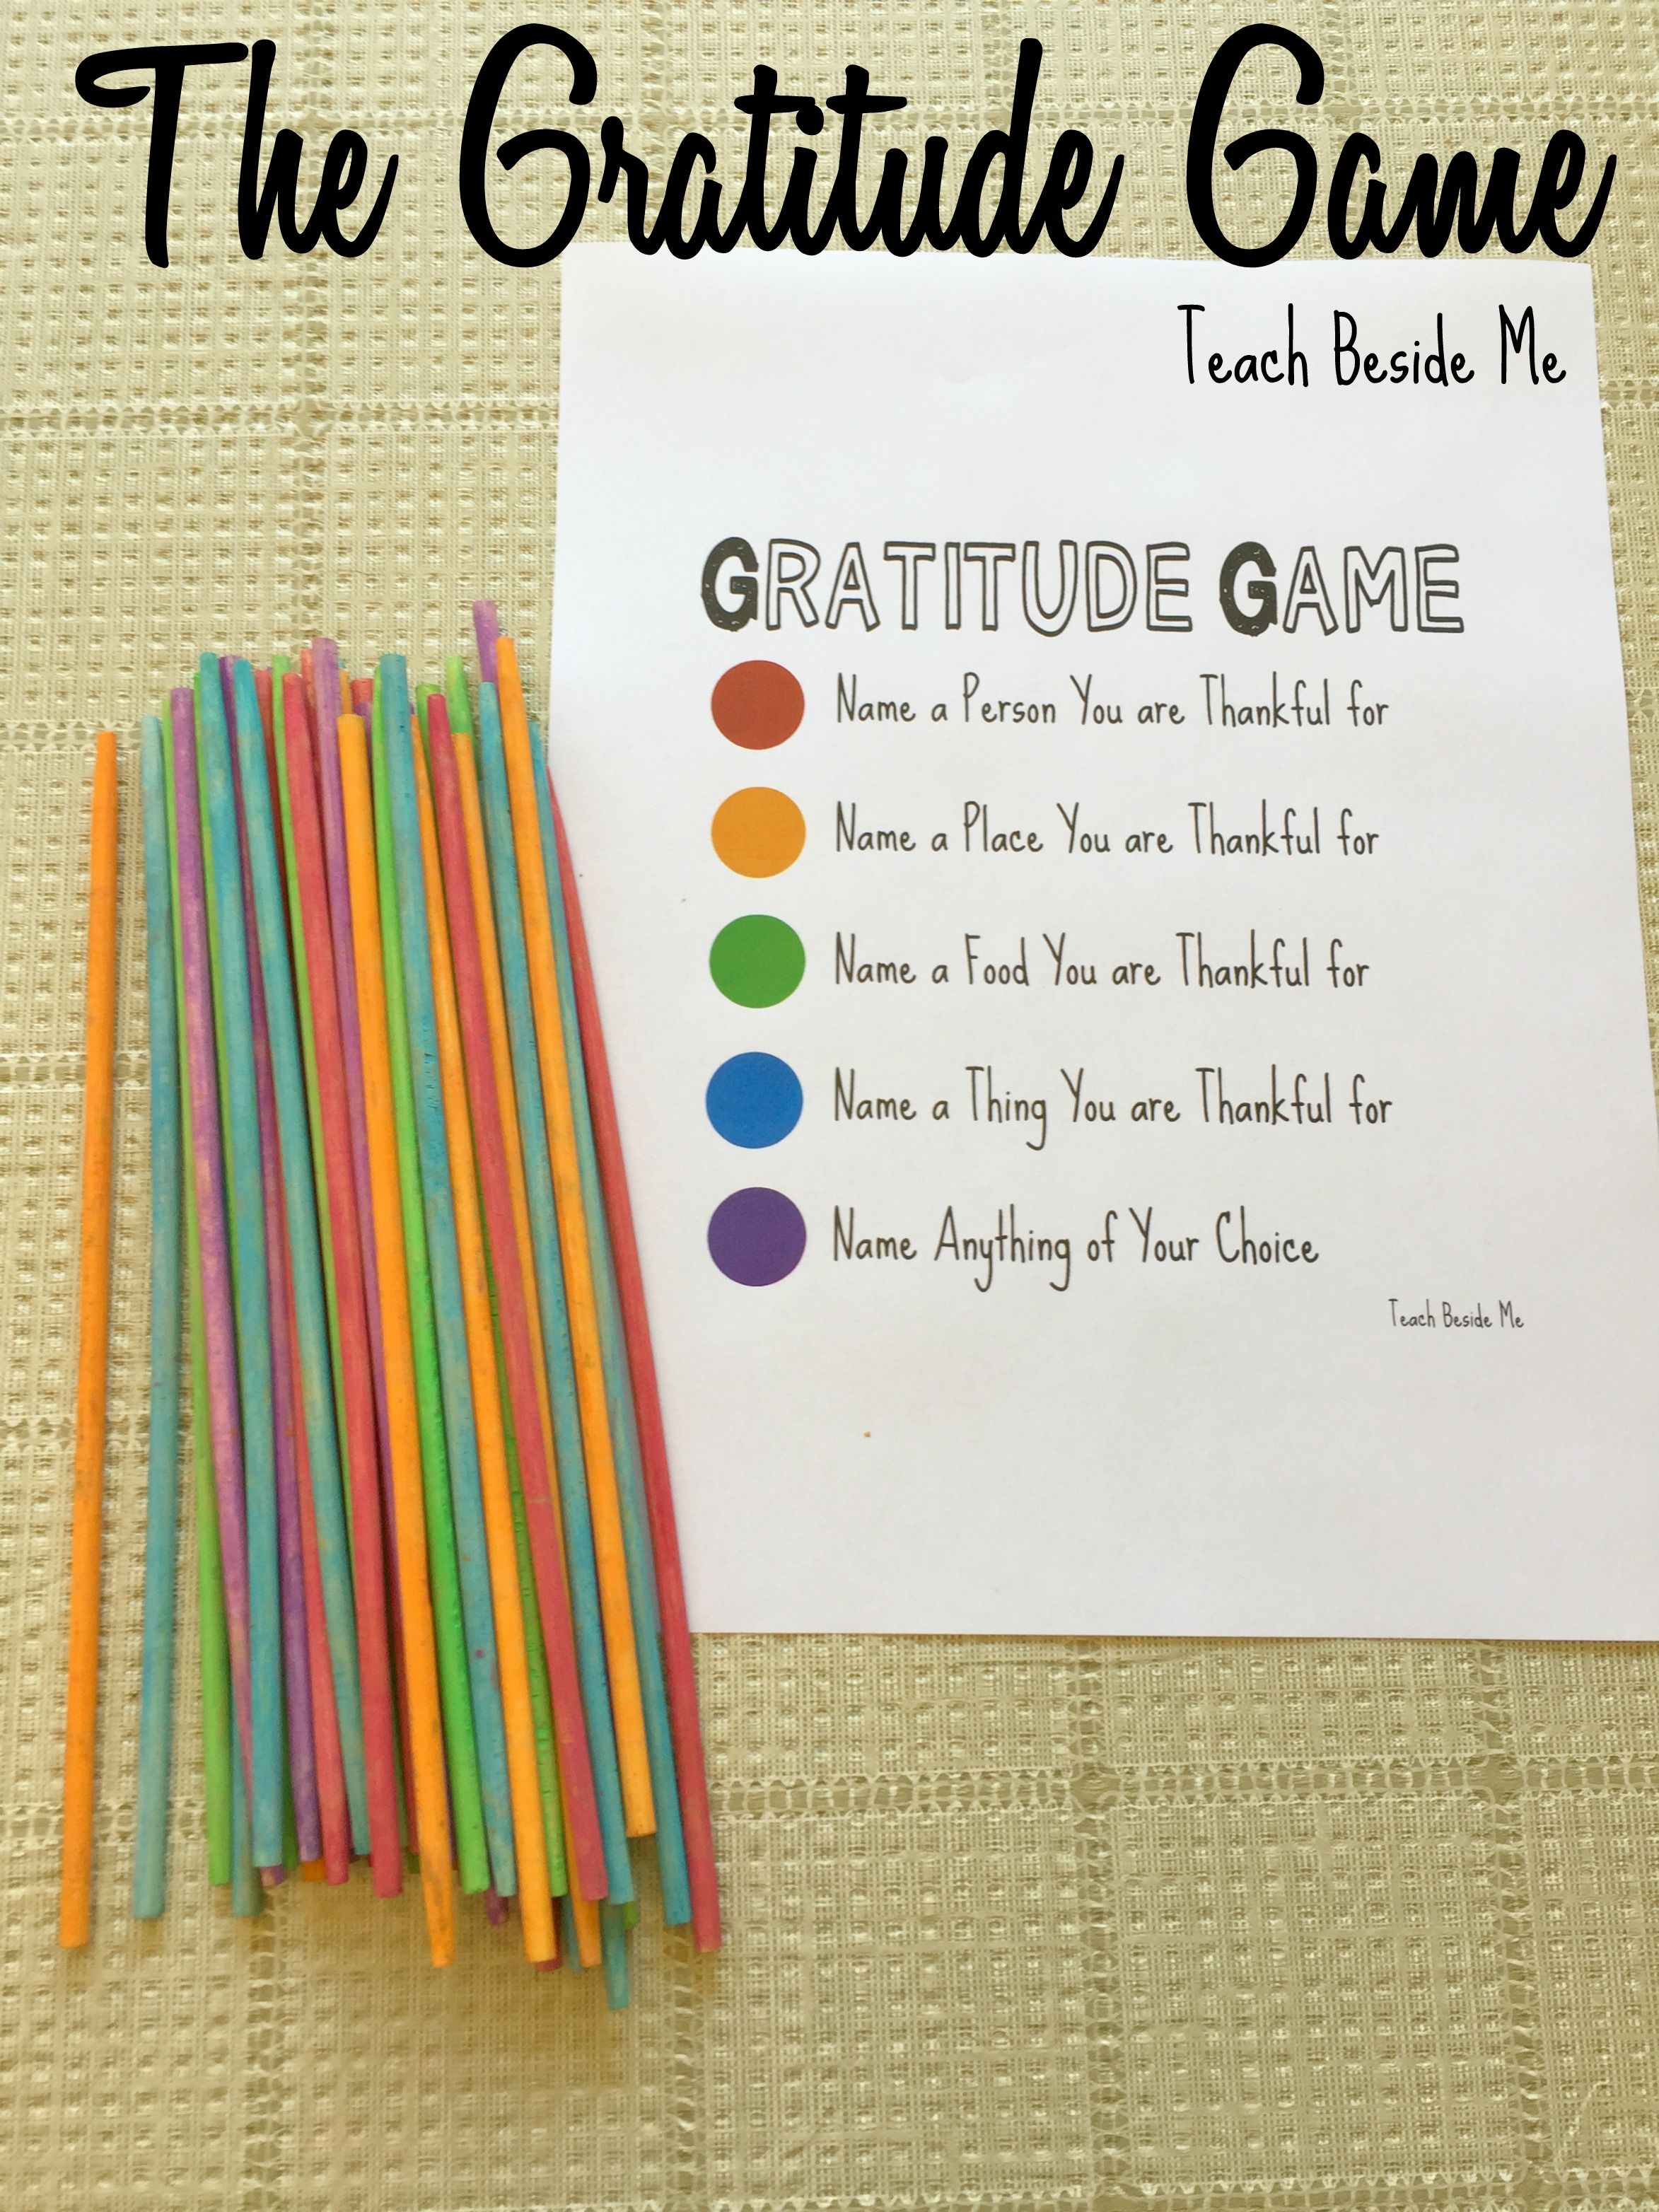 The Gratitude Game Pick Up Sticks With Images